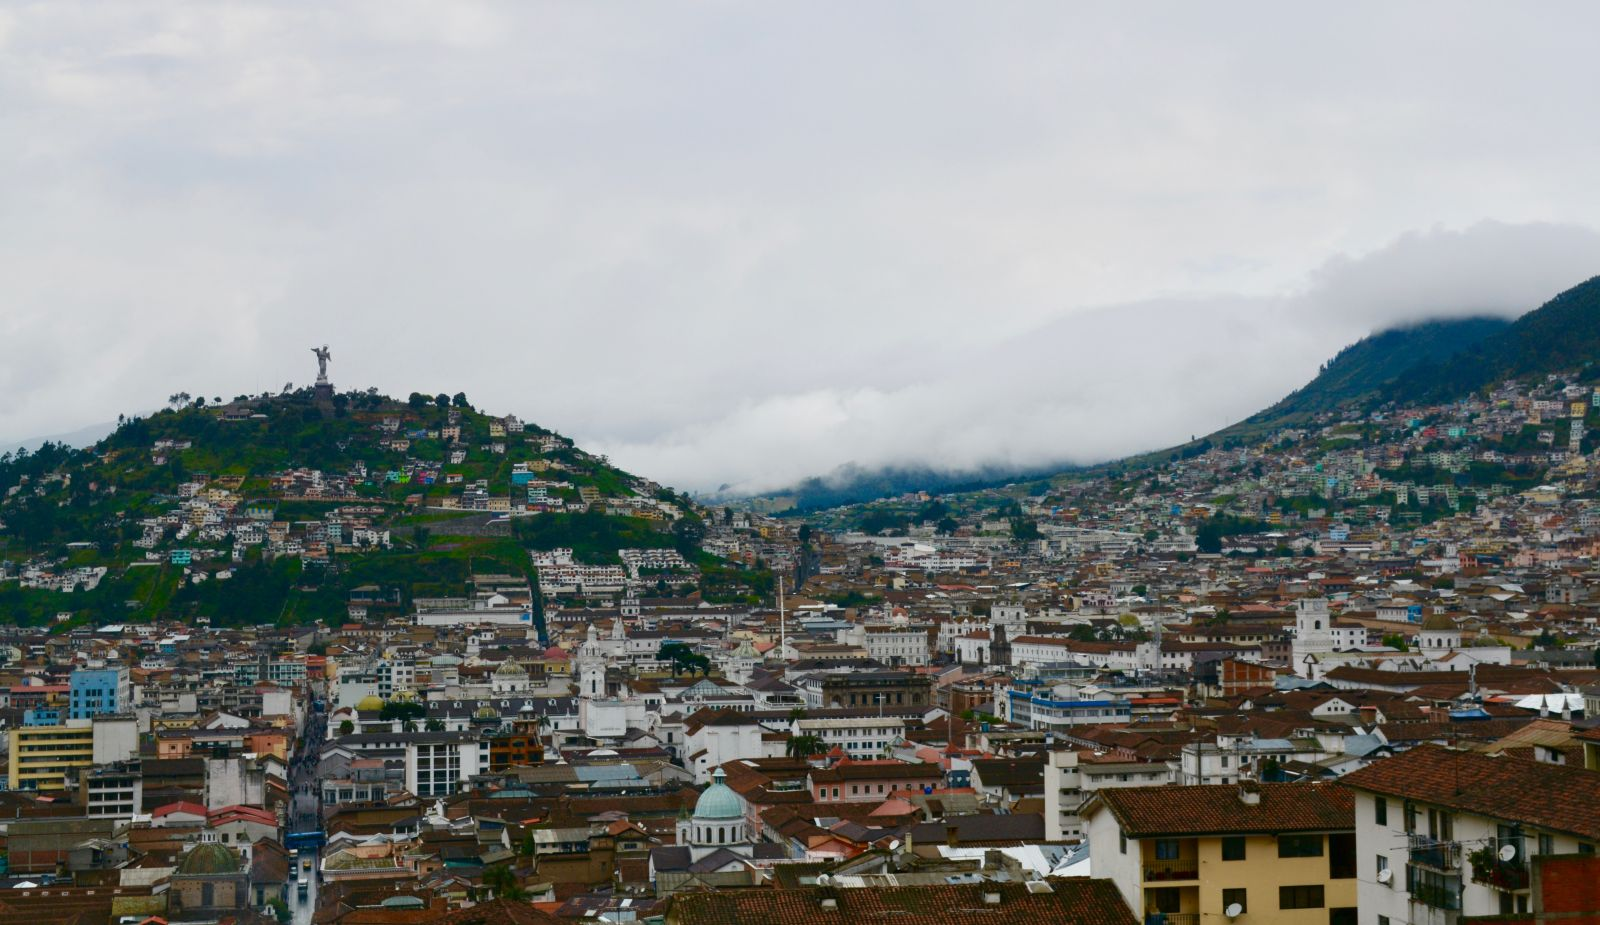 quito-clouds-in-background